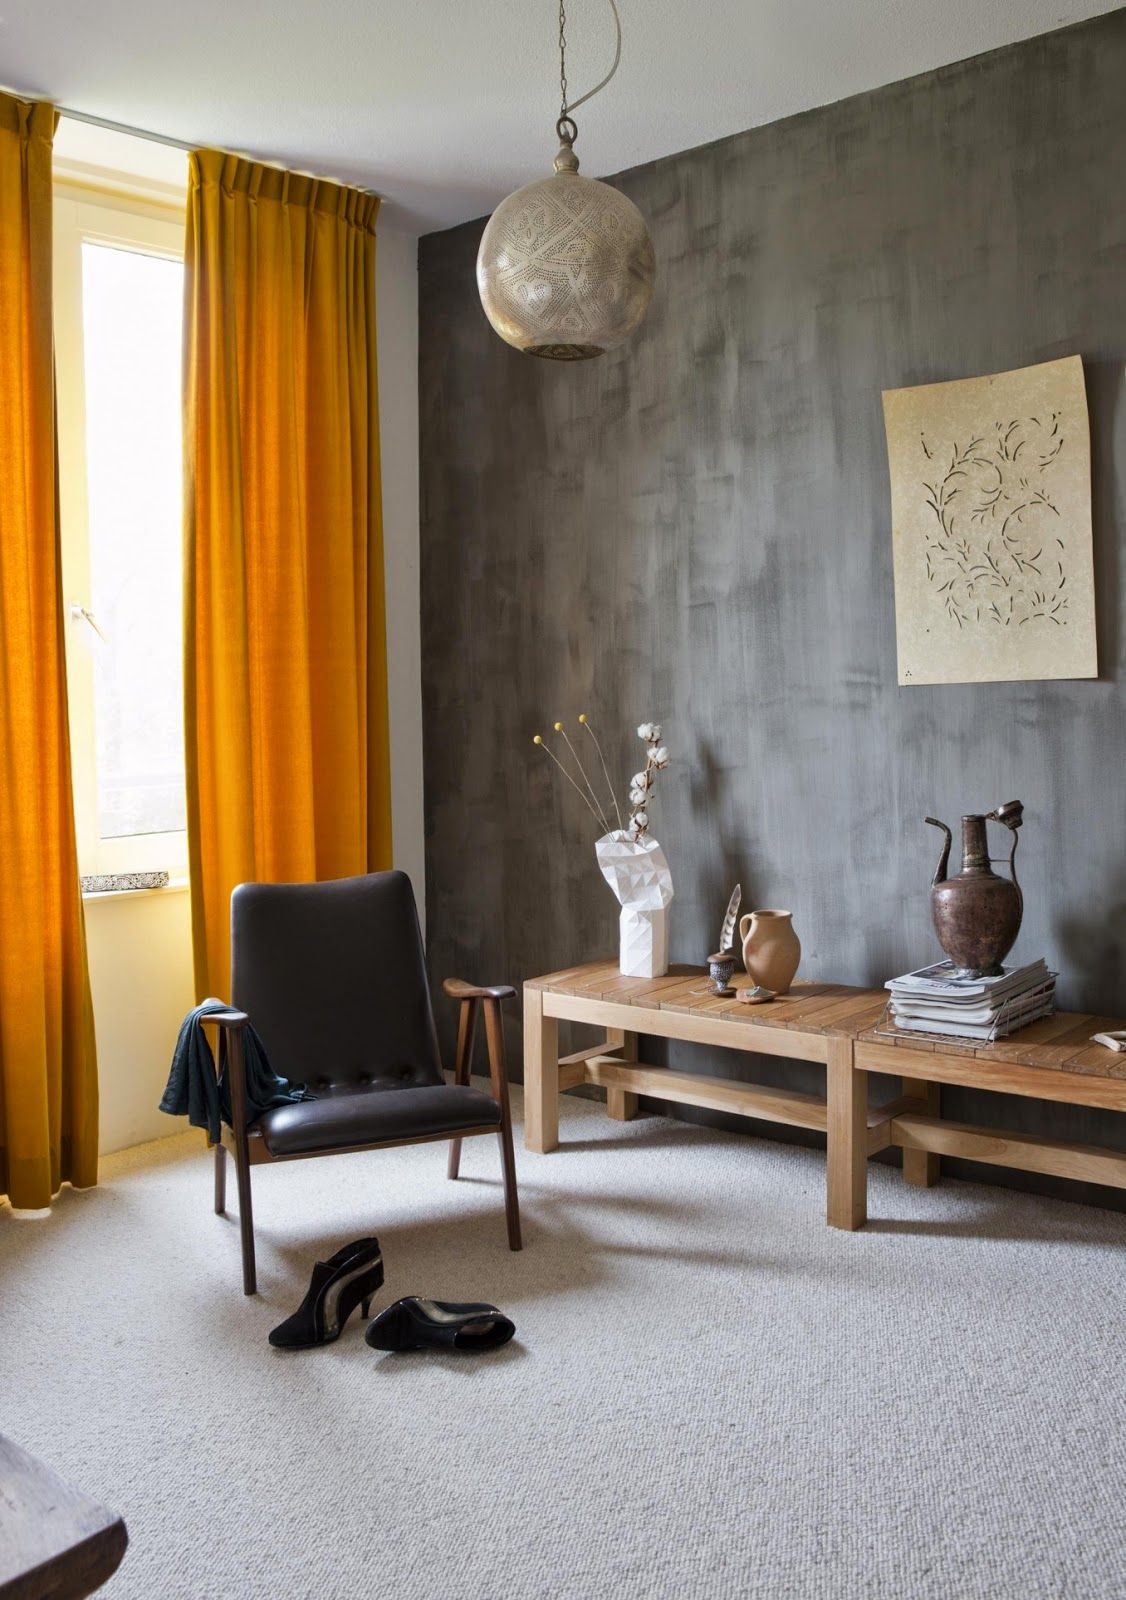 A house in Netherlands with a bohemian spirit